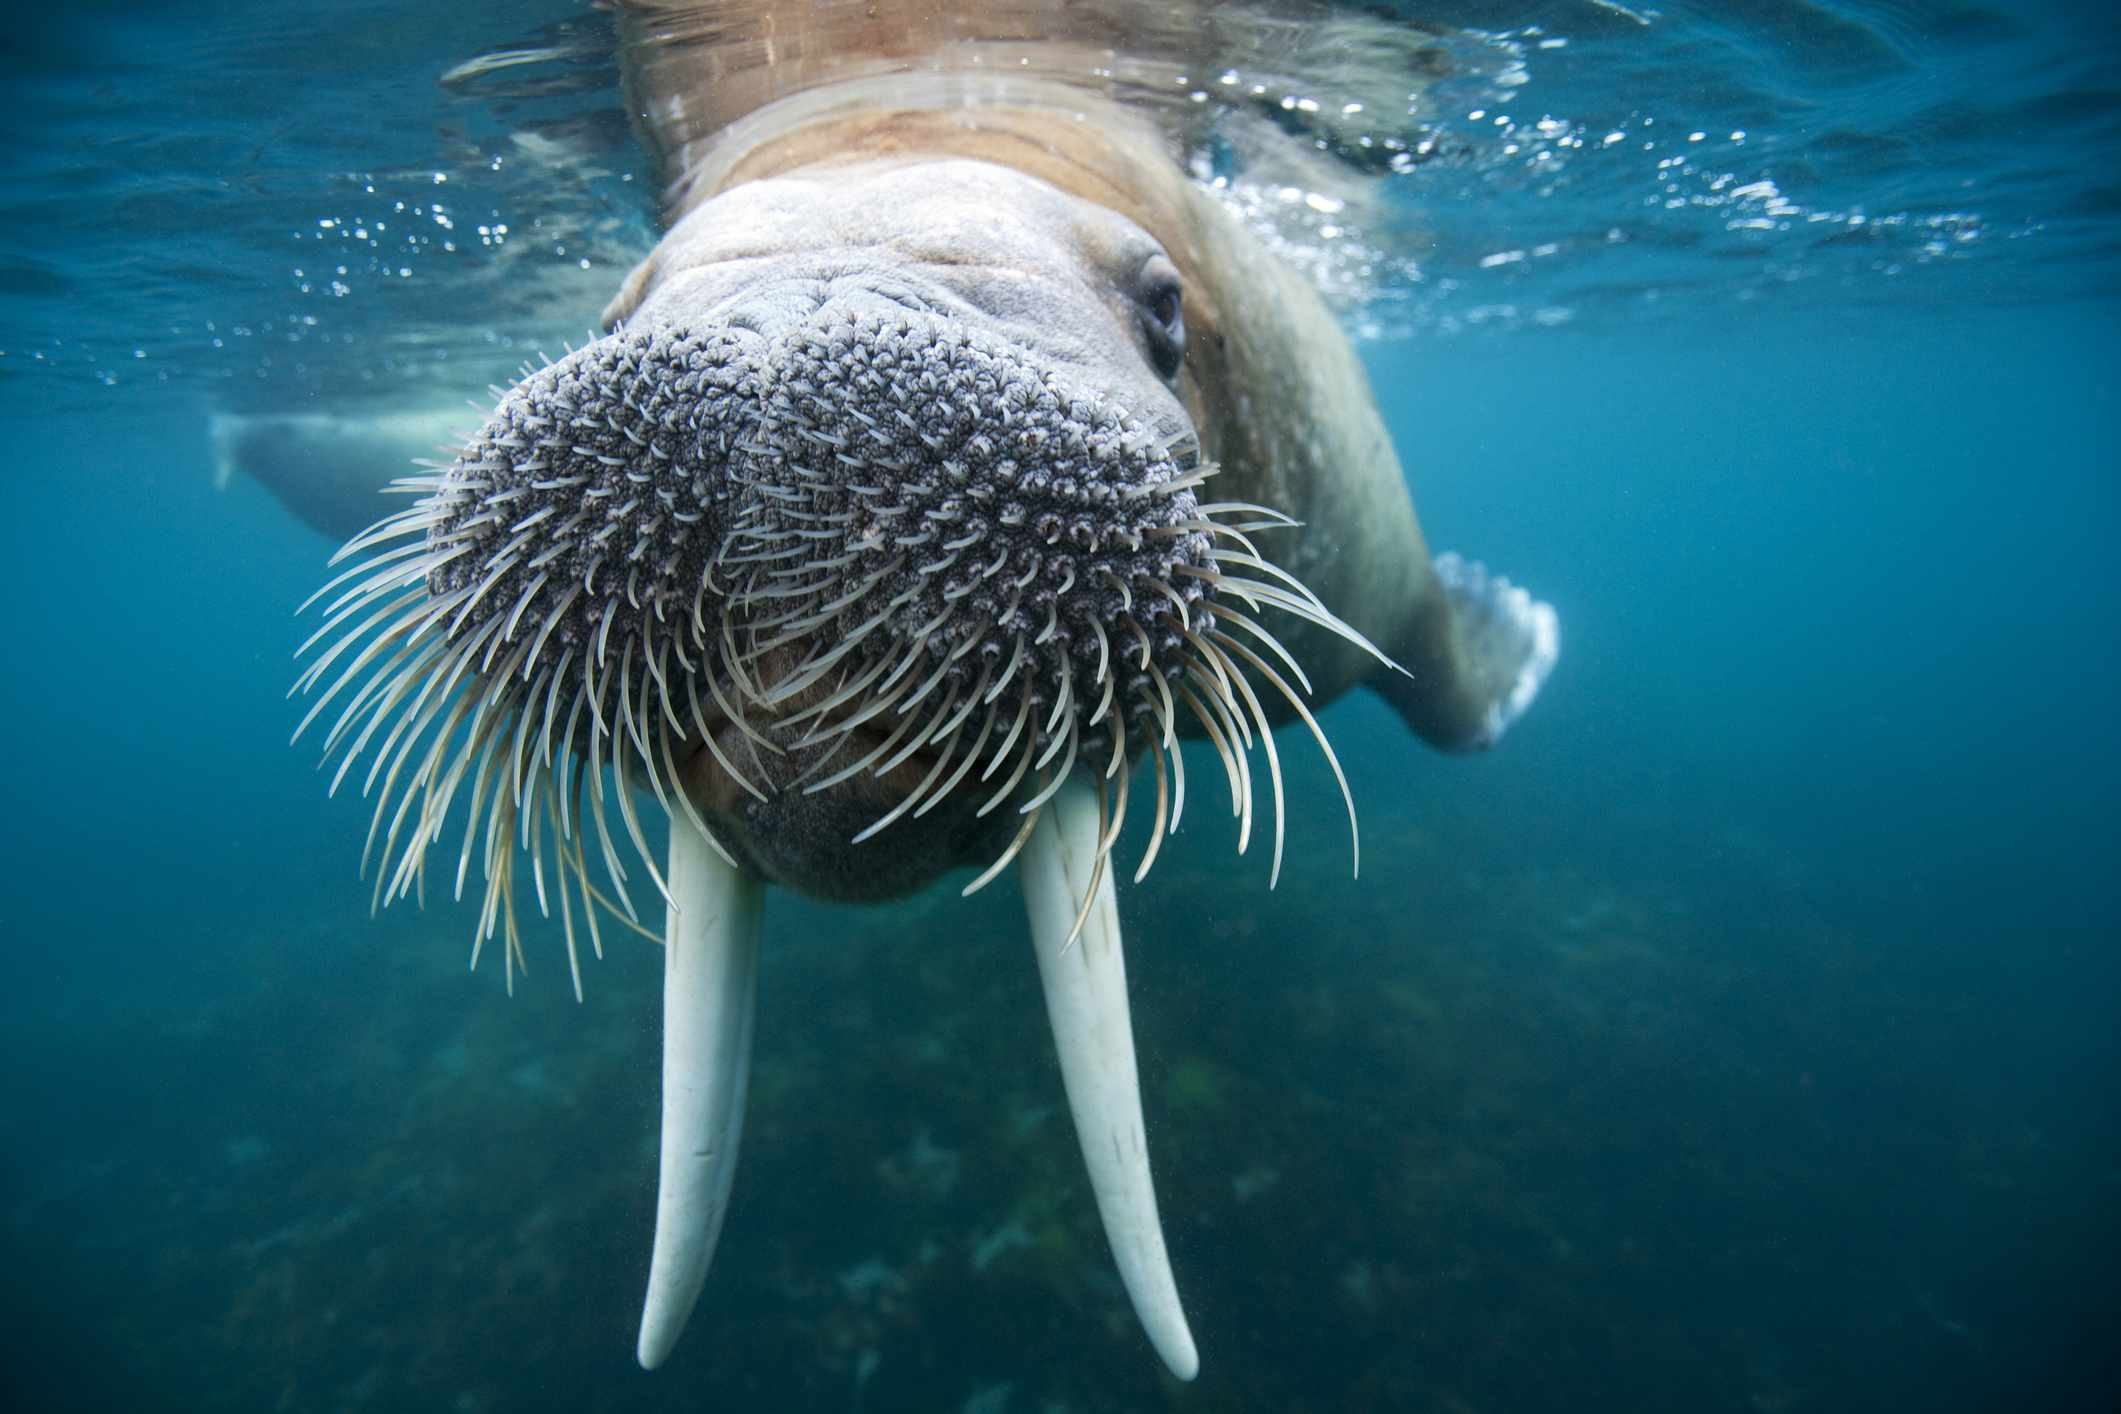 close up view of walrus underwater with vibrissae and tusks visible